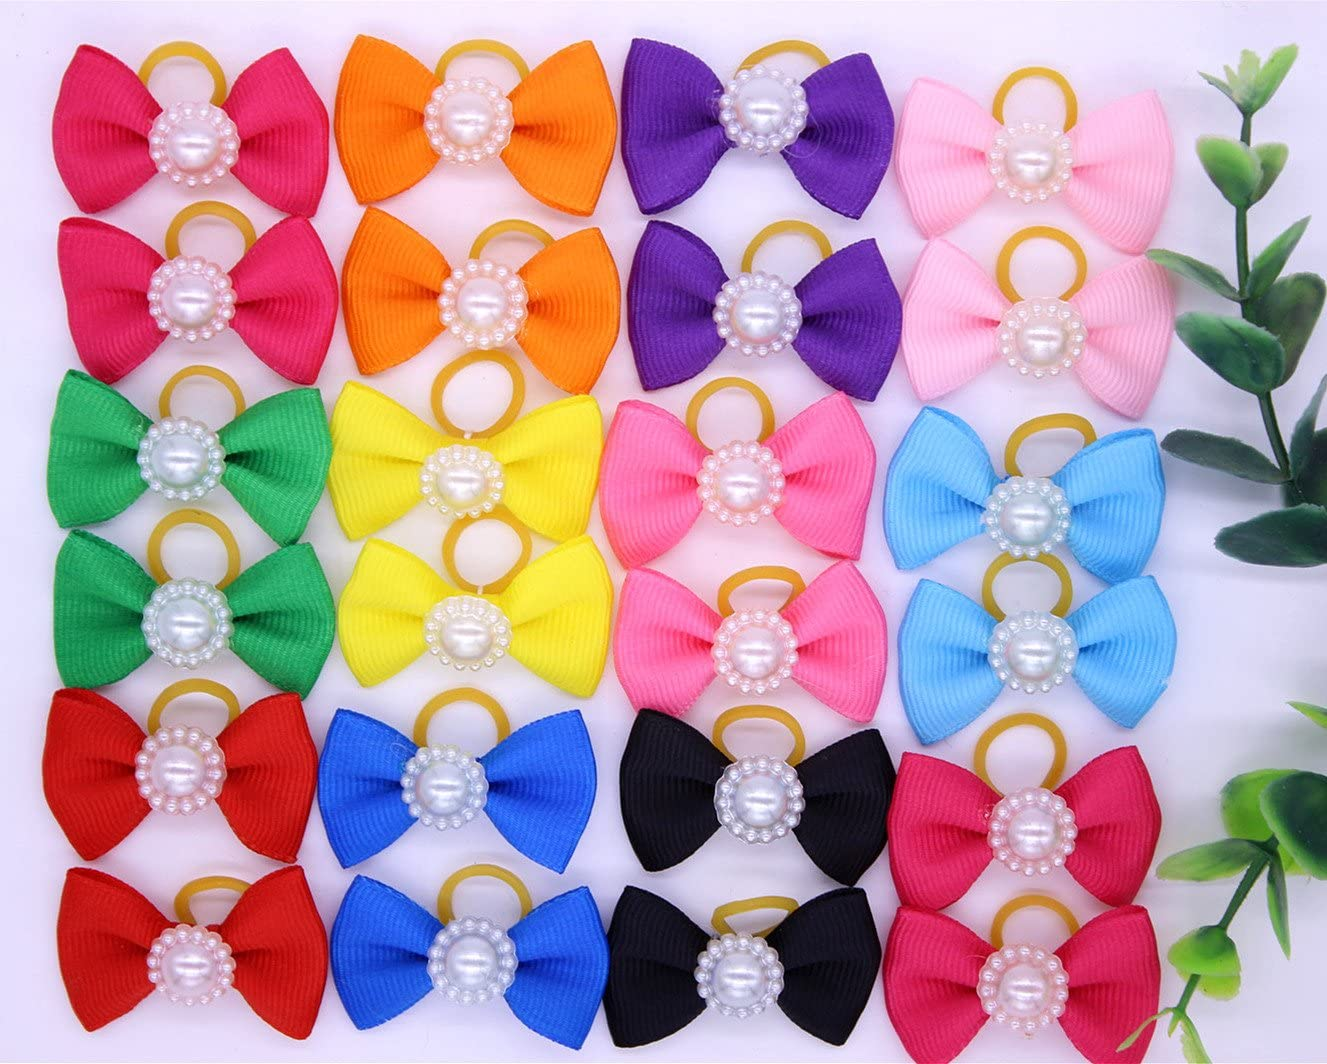 yagopet 20pcs//10pairs Dog Hair BowsTopknot Solid Colors Bows with Pearls Pet Dog Grooming Bows Pet Supplies Hair Accessories